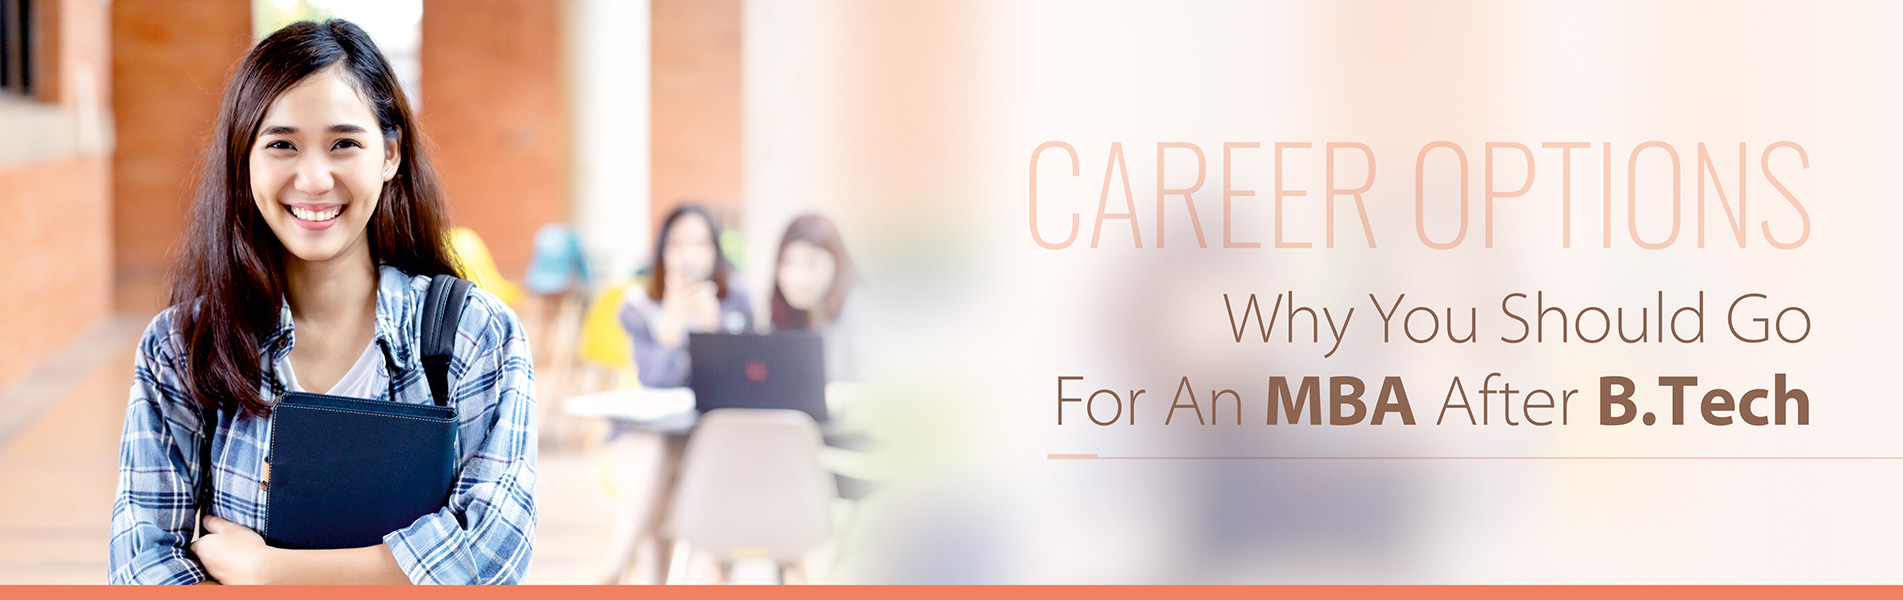 Career Options Why You Should Go For An MBA After B Tech